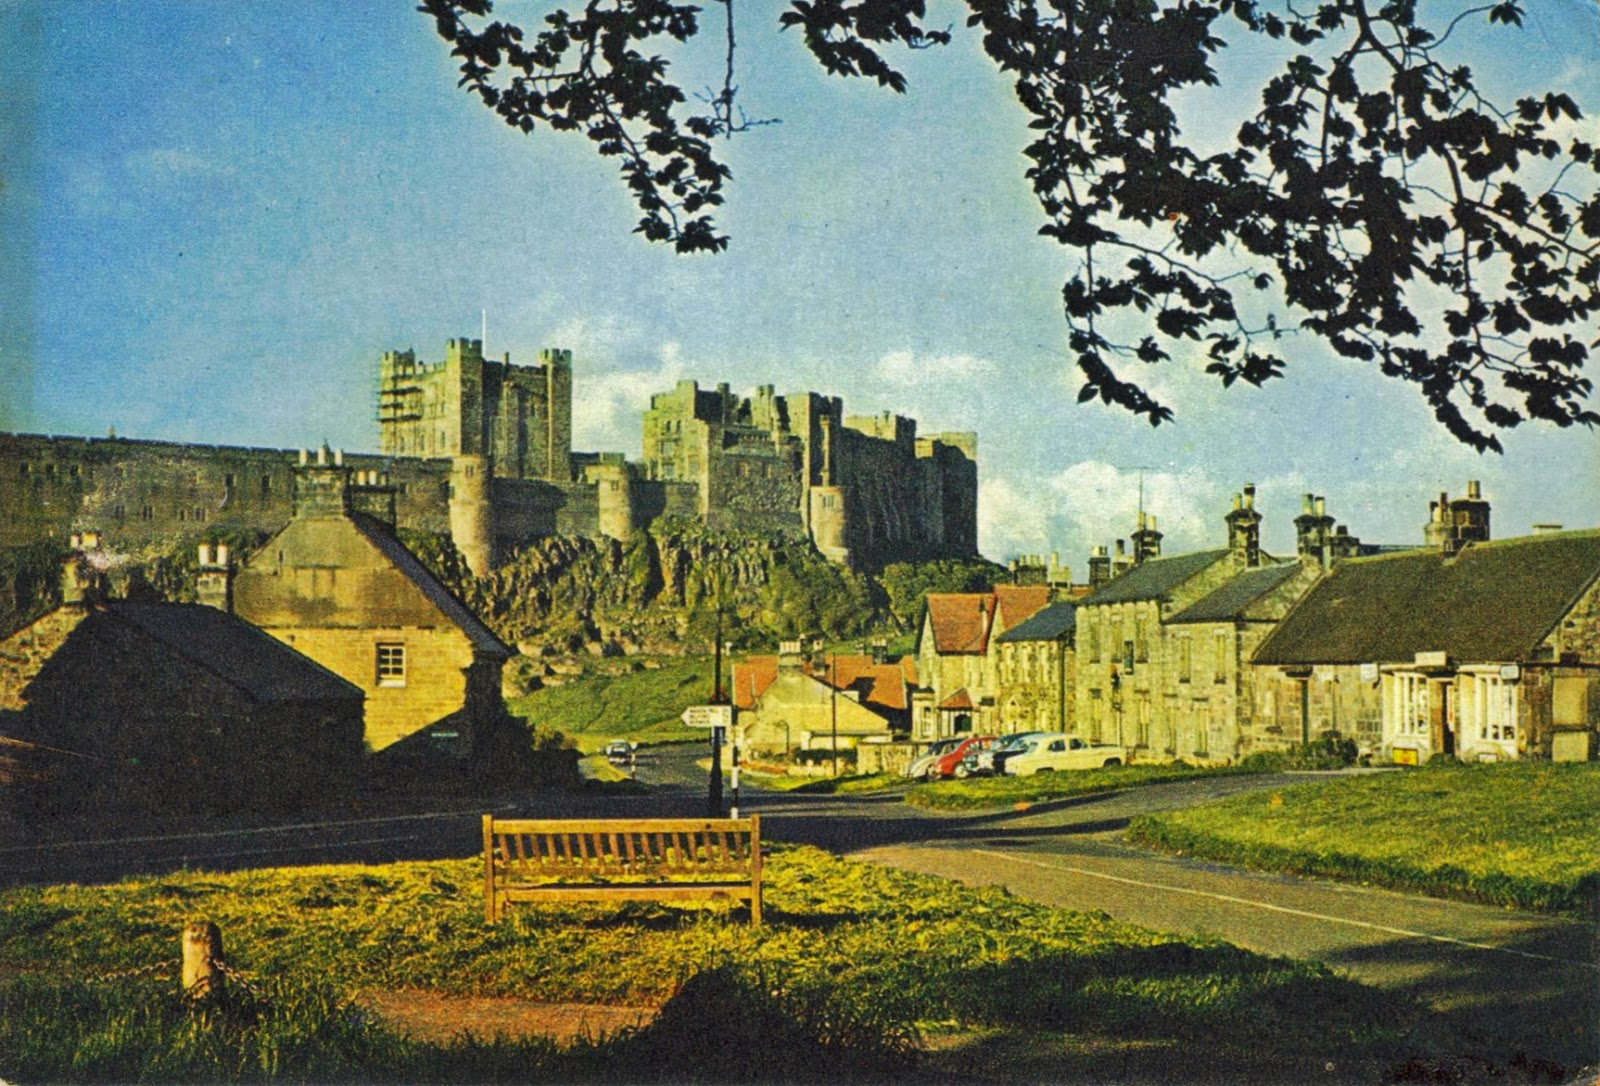 Bamburgh Village and castle